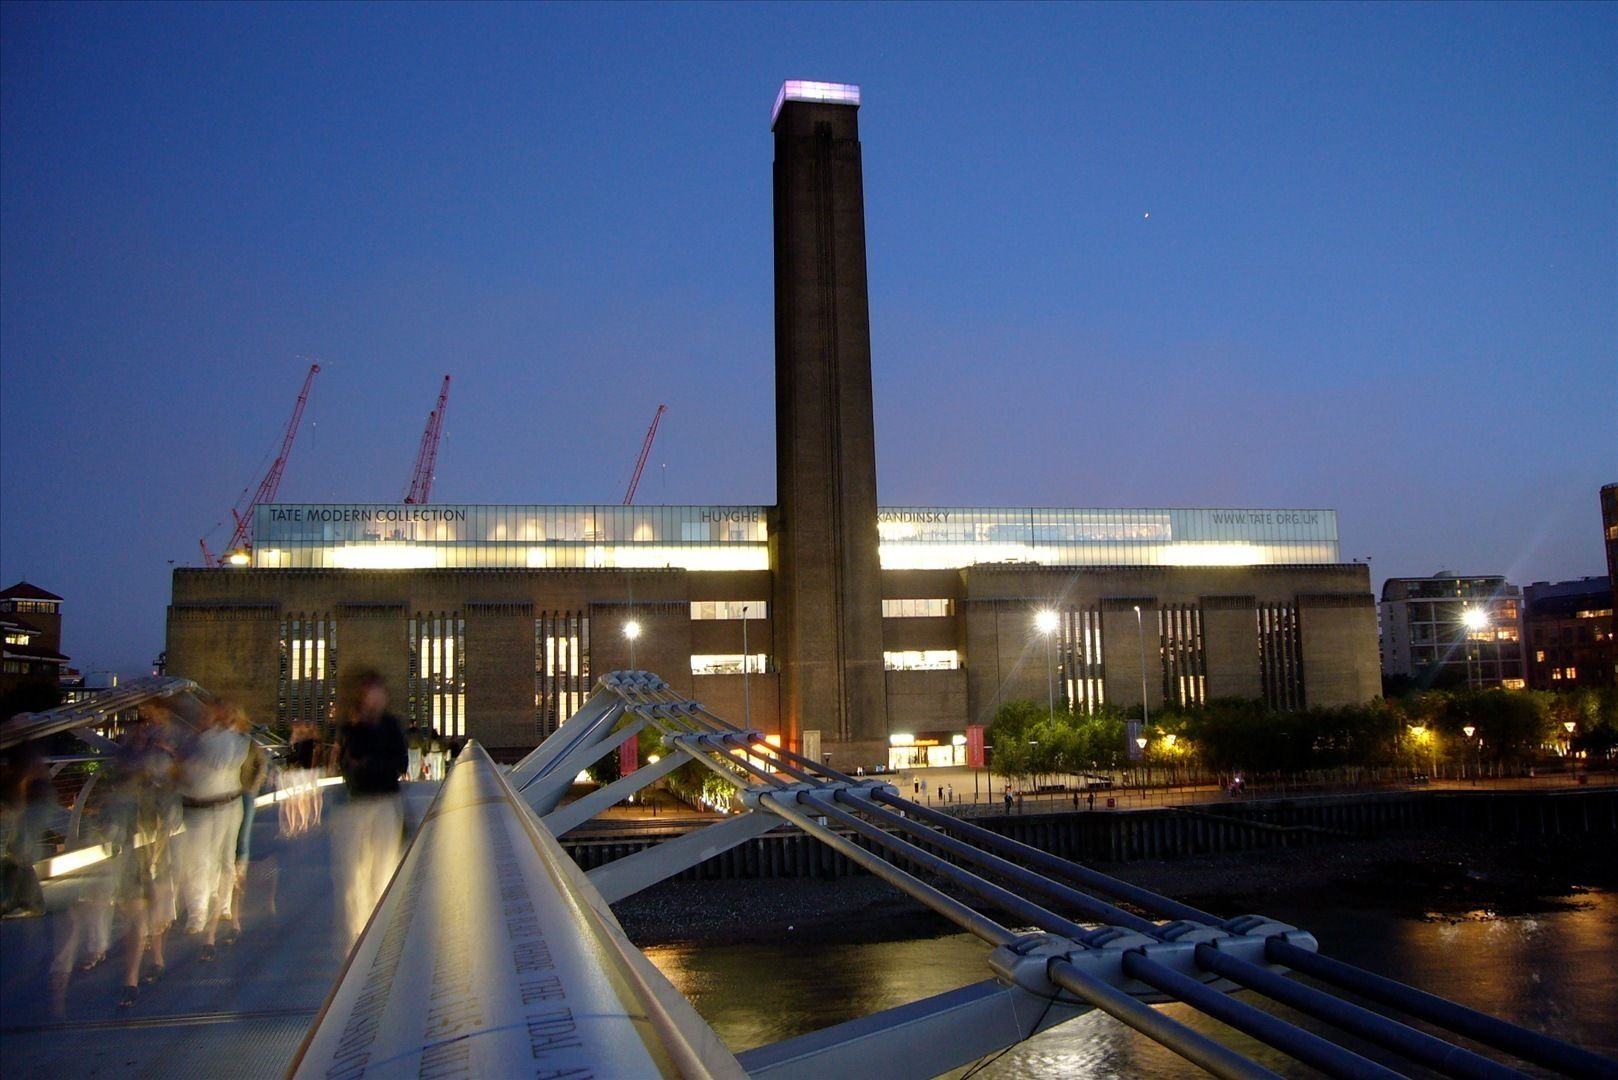 An article about the Tate Modern in London. It's a